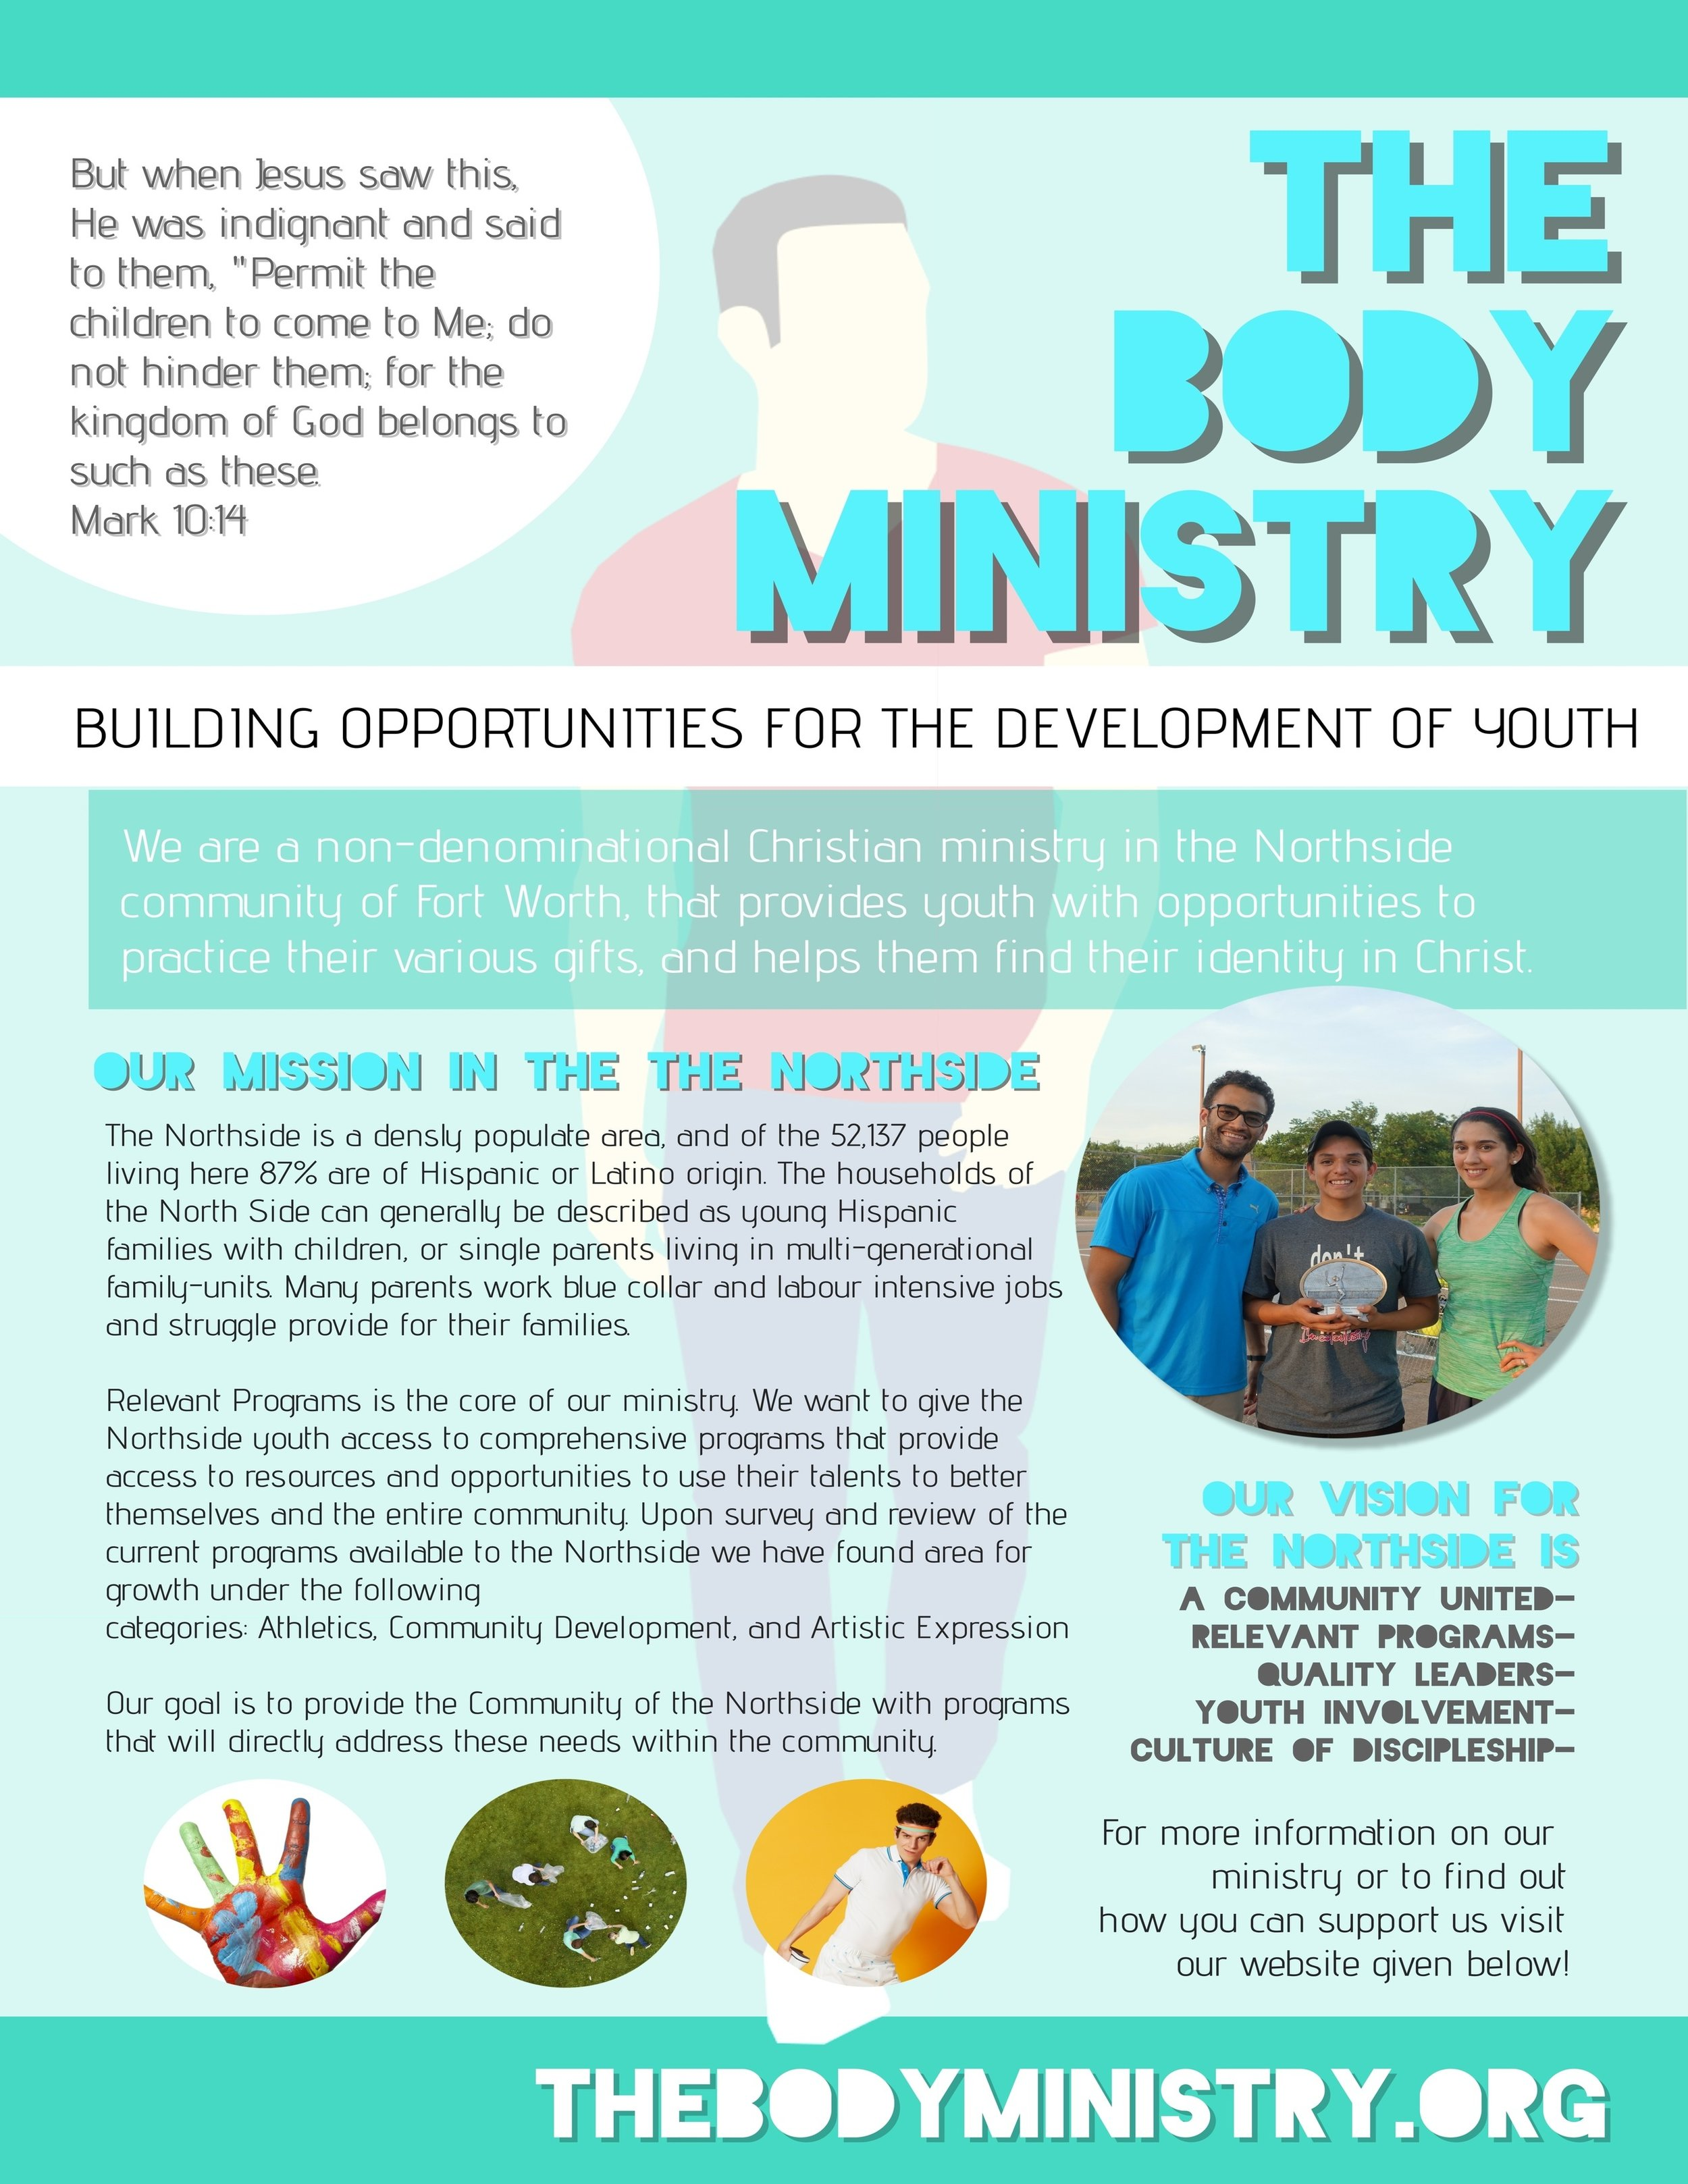 Help Us Spread the Word! - Click the button below to download our ministry promotional flyer, so you can print it, put it in your office and show it to everyone you know!